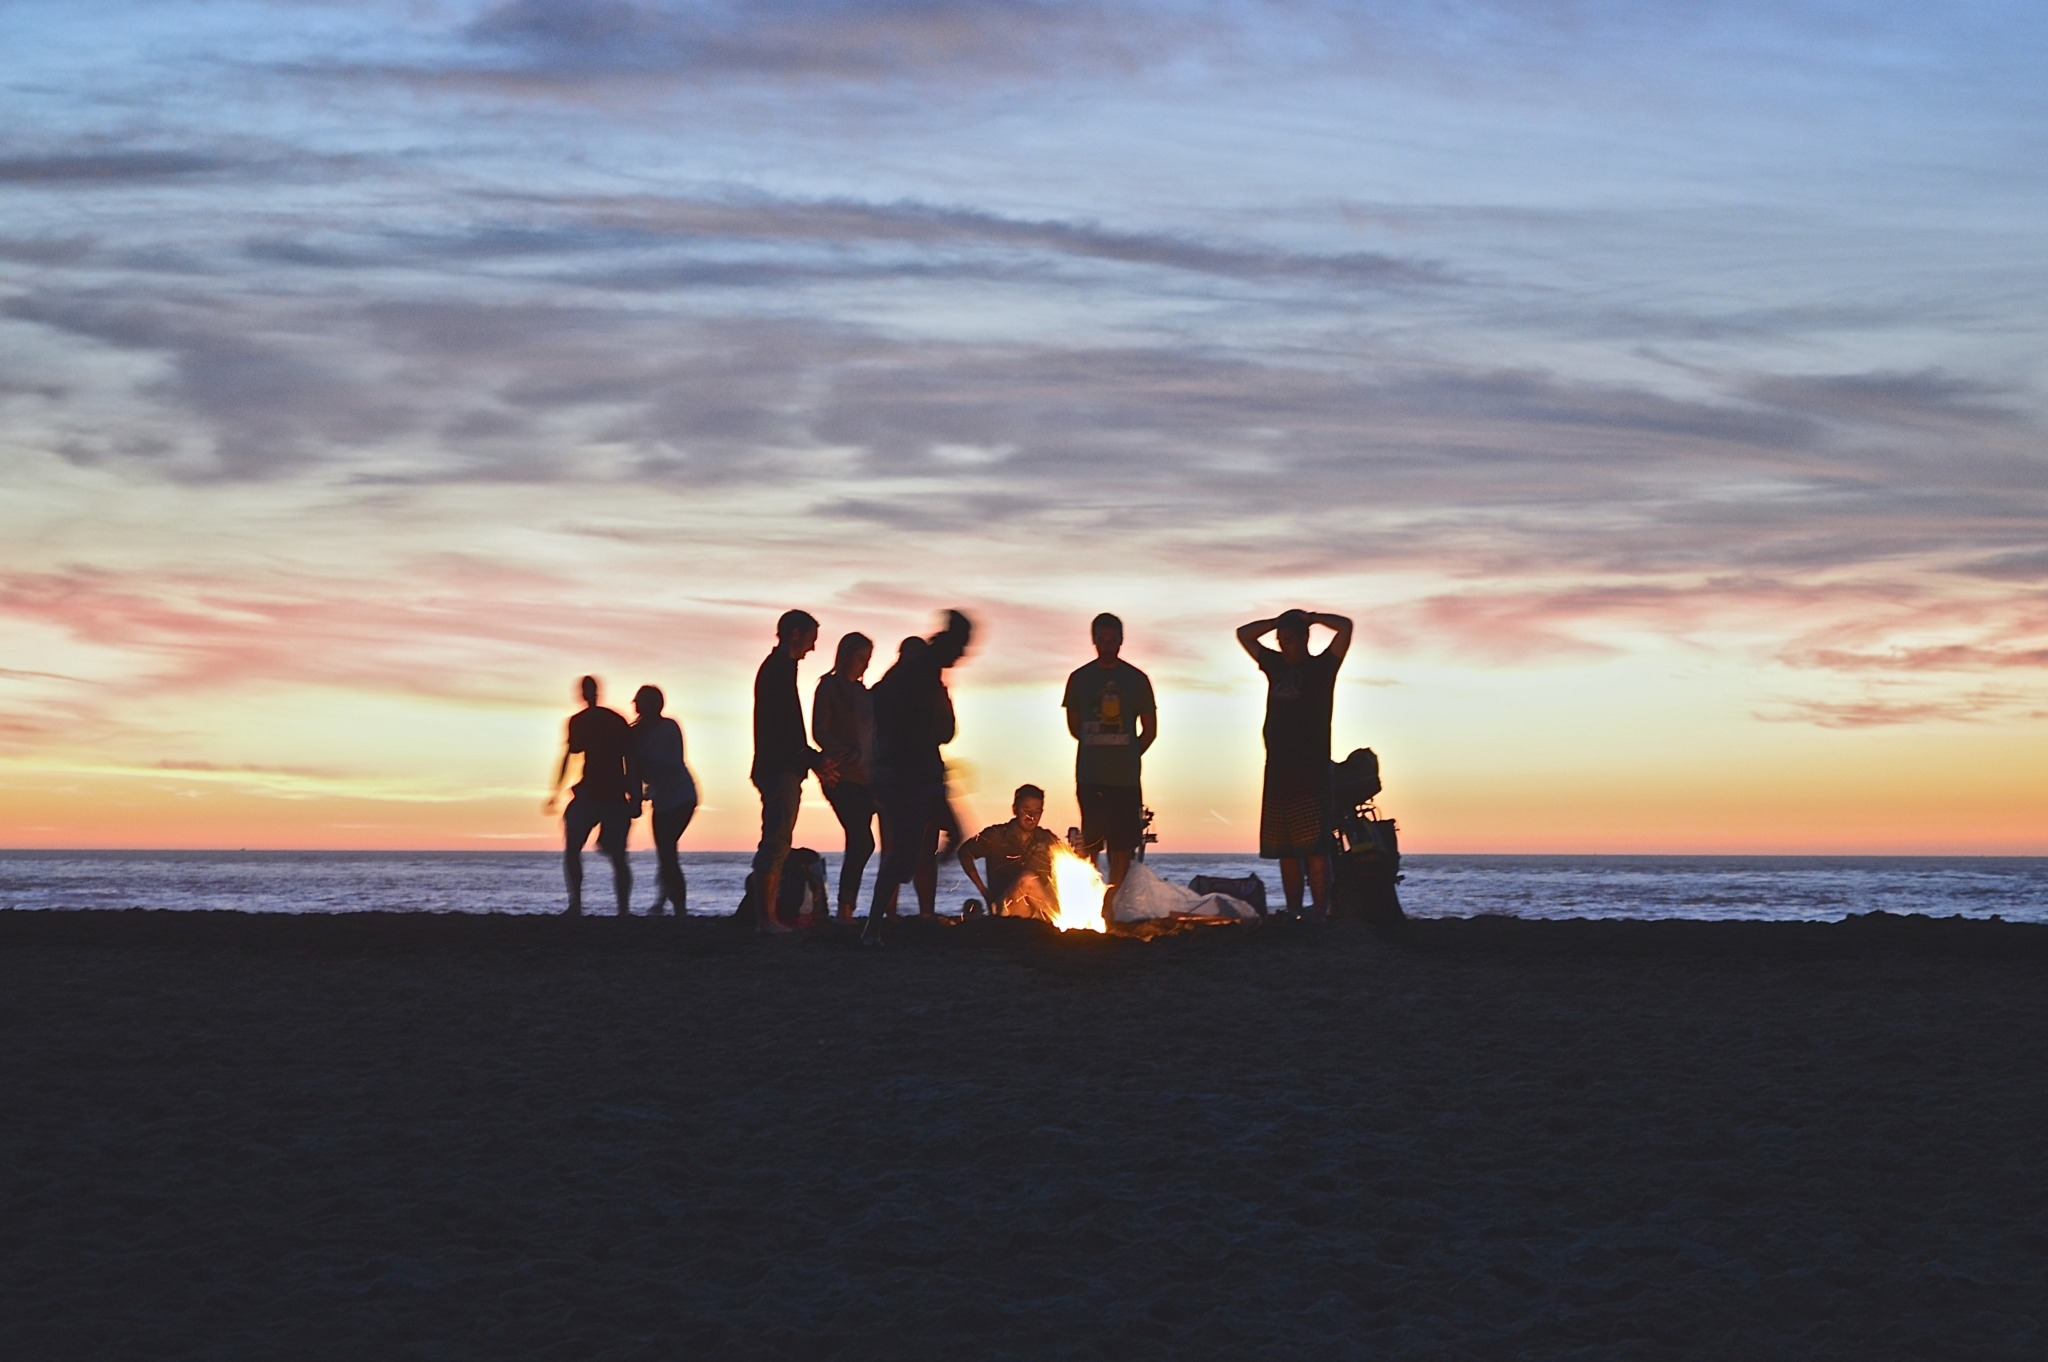 people at a beach bonfire